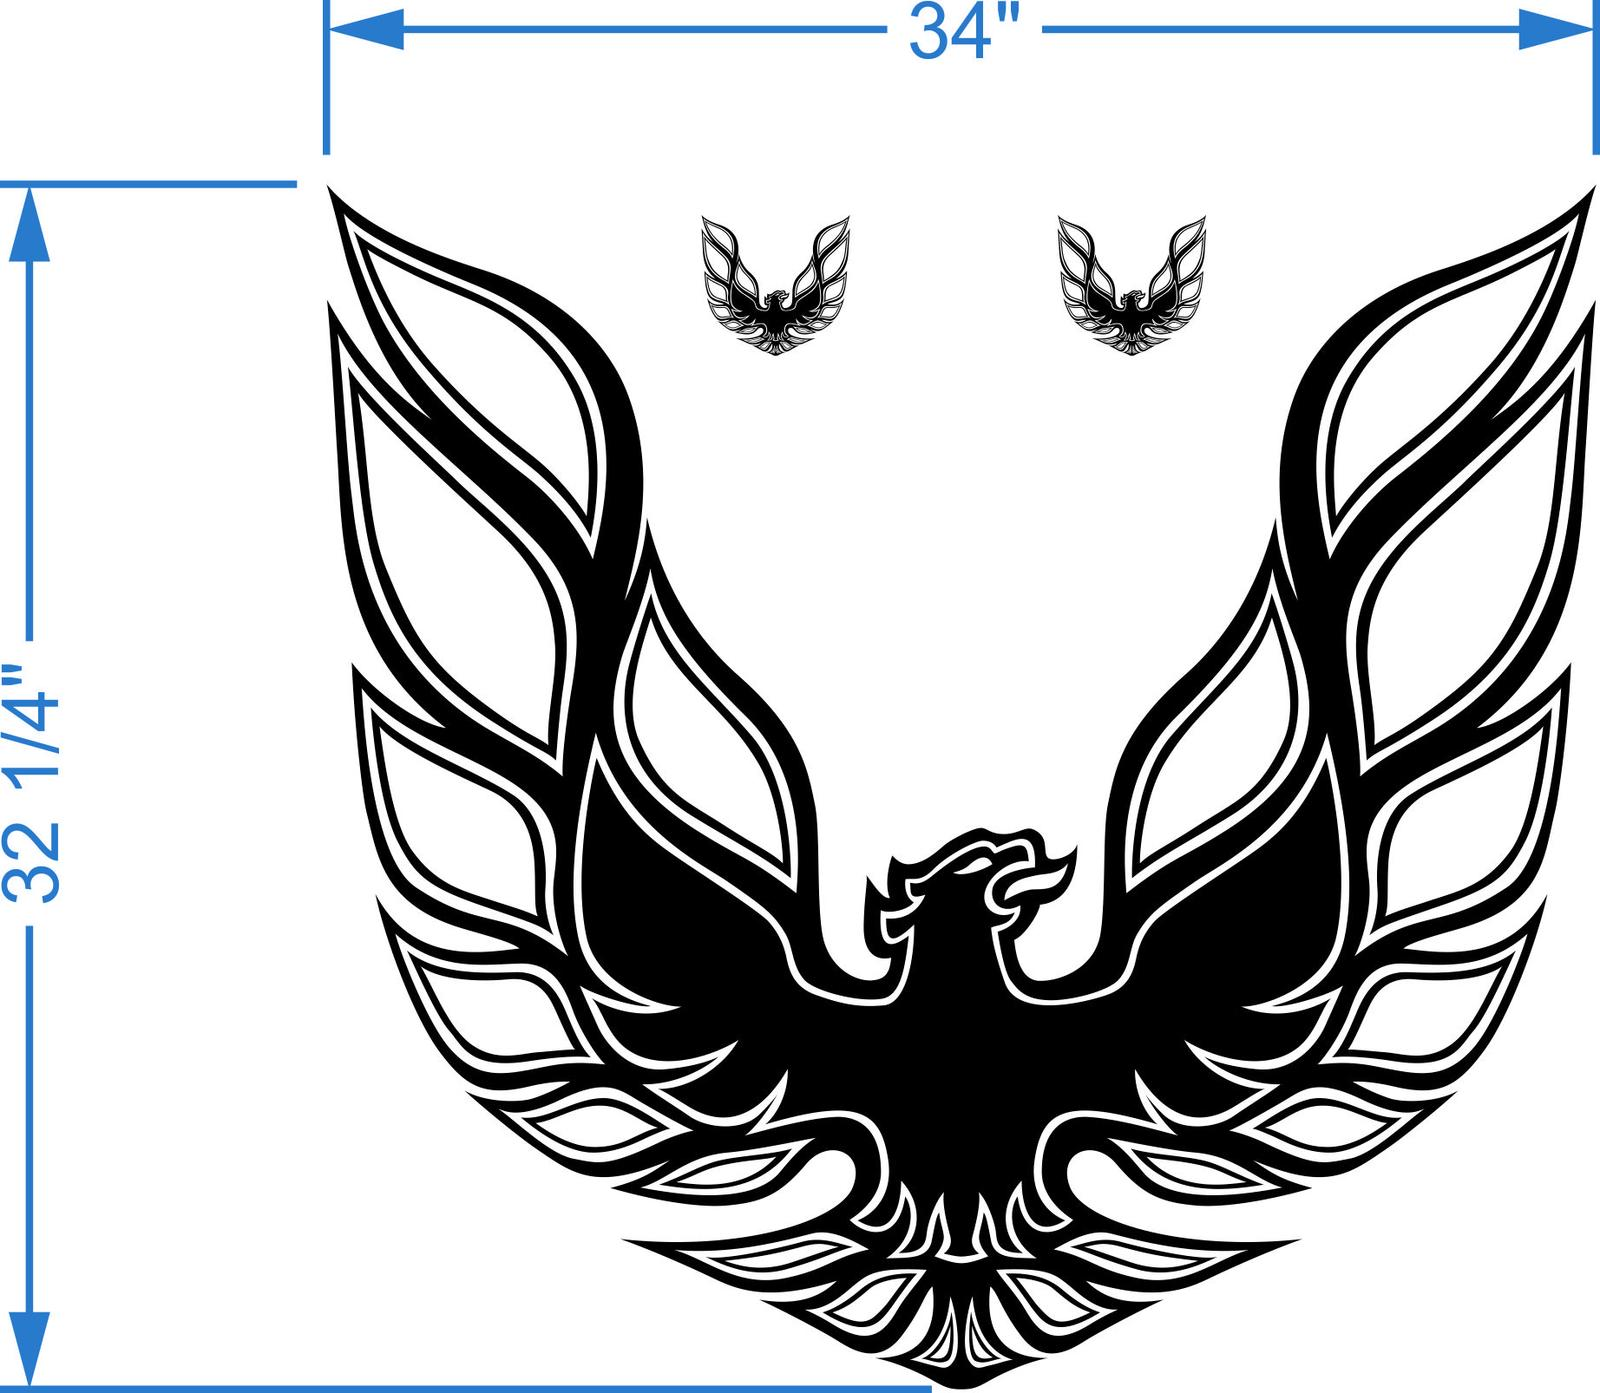 Pontiac Firebird Logo Vector. Holly Lettering. Tiki Bar Signs. Banksy Murals. Painterly Murals. Custom Vinyl Decal Stickers. Luxury Stickers. Endocrine Signs. Template Signs